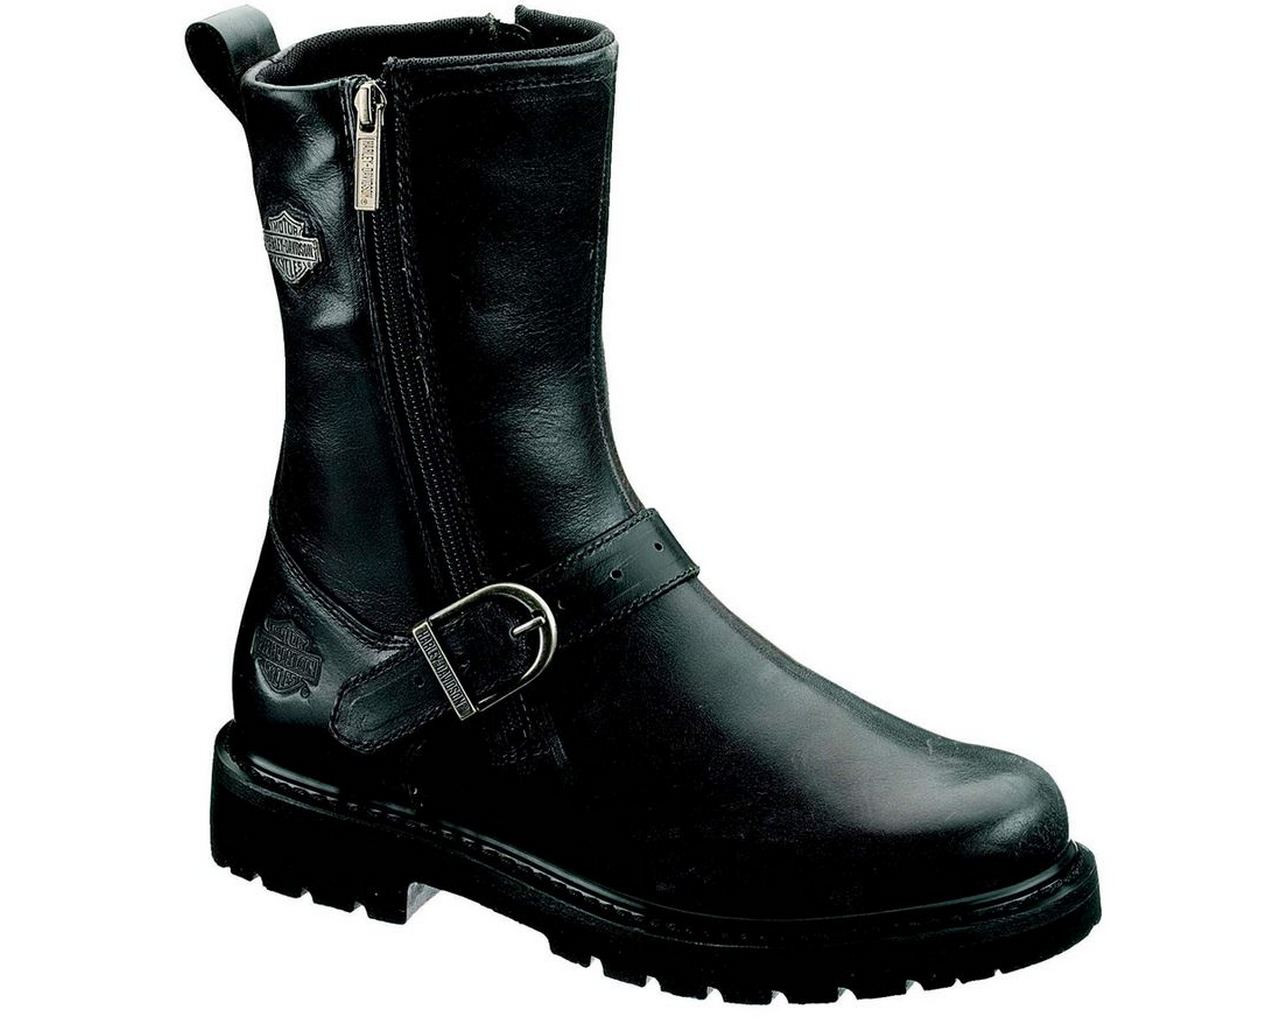 06ff8d816bd4 Harley-Davidson® Men s Ryan 8.5-Inch Black or Brown Boots. Side Zip. D93204  - Wisconsin Harley-Davidson